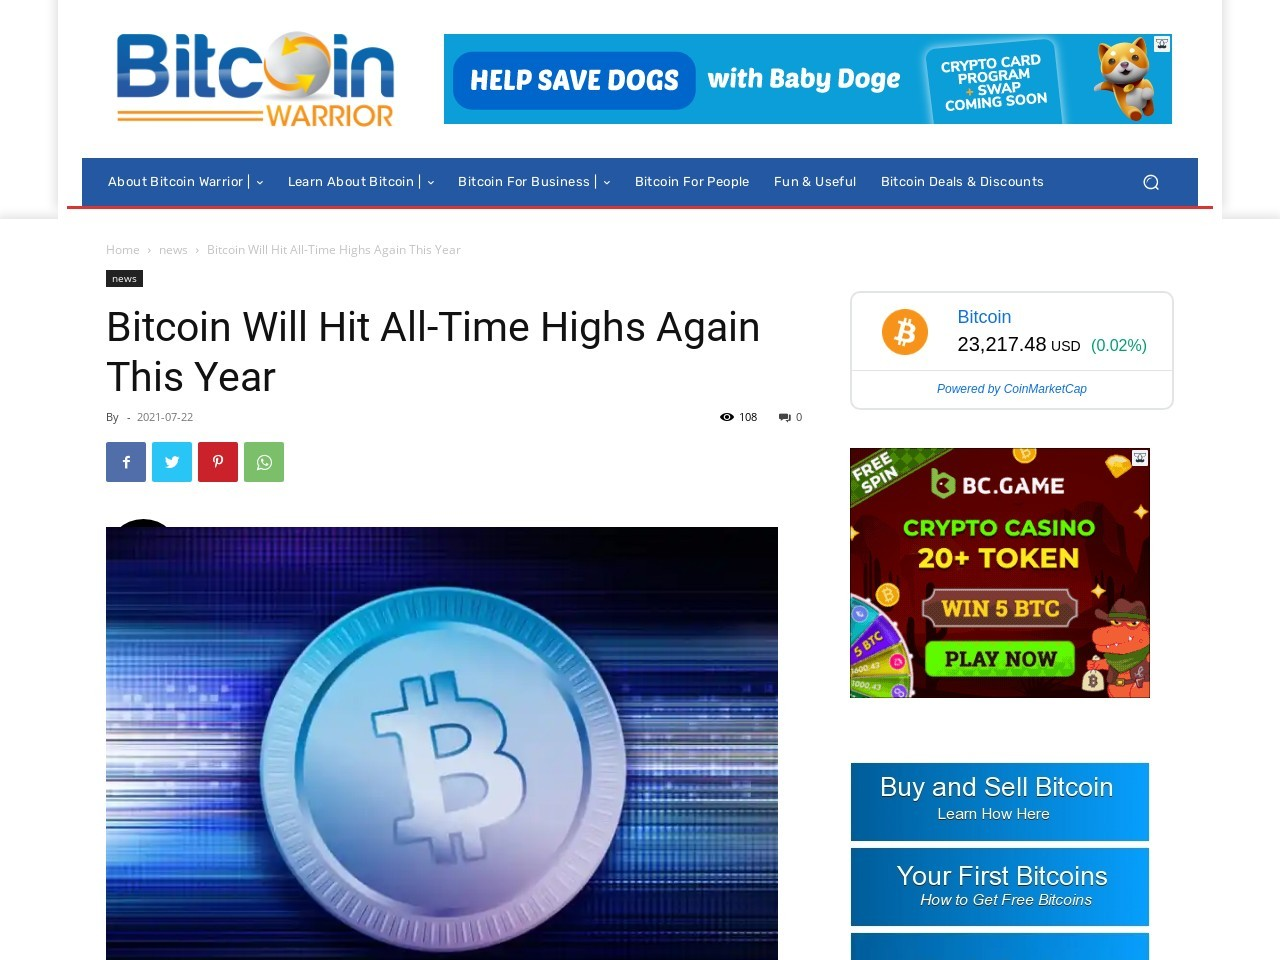 Bitcoin Will Hit All-Time Highs Again This Year